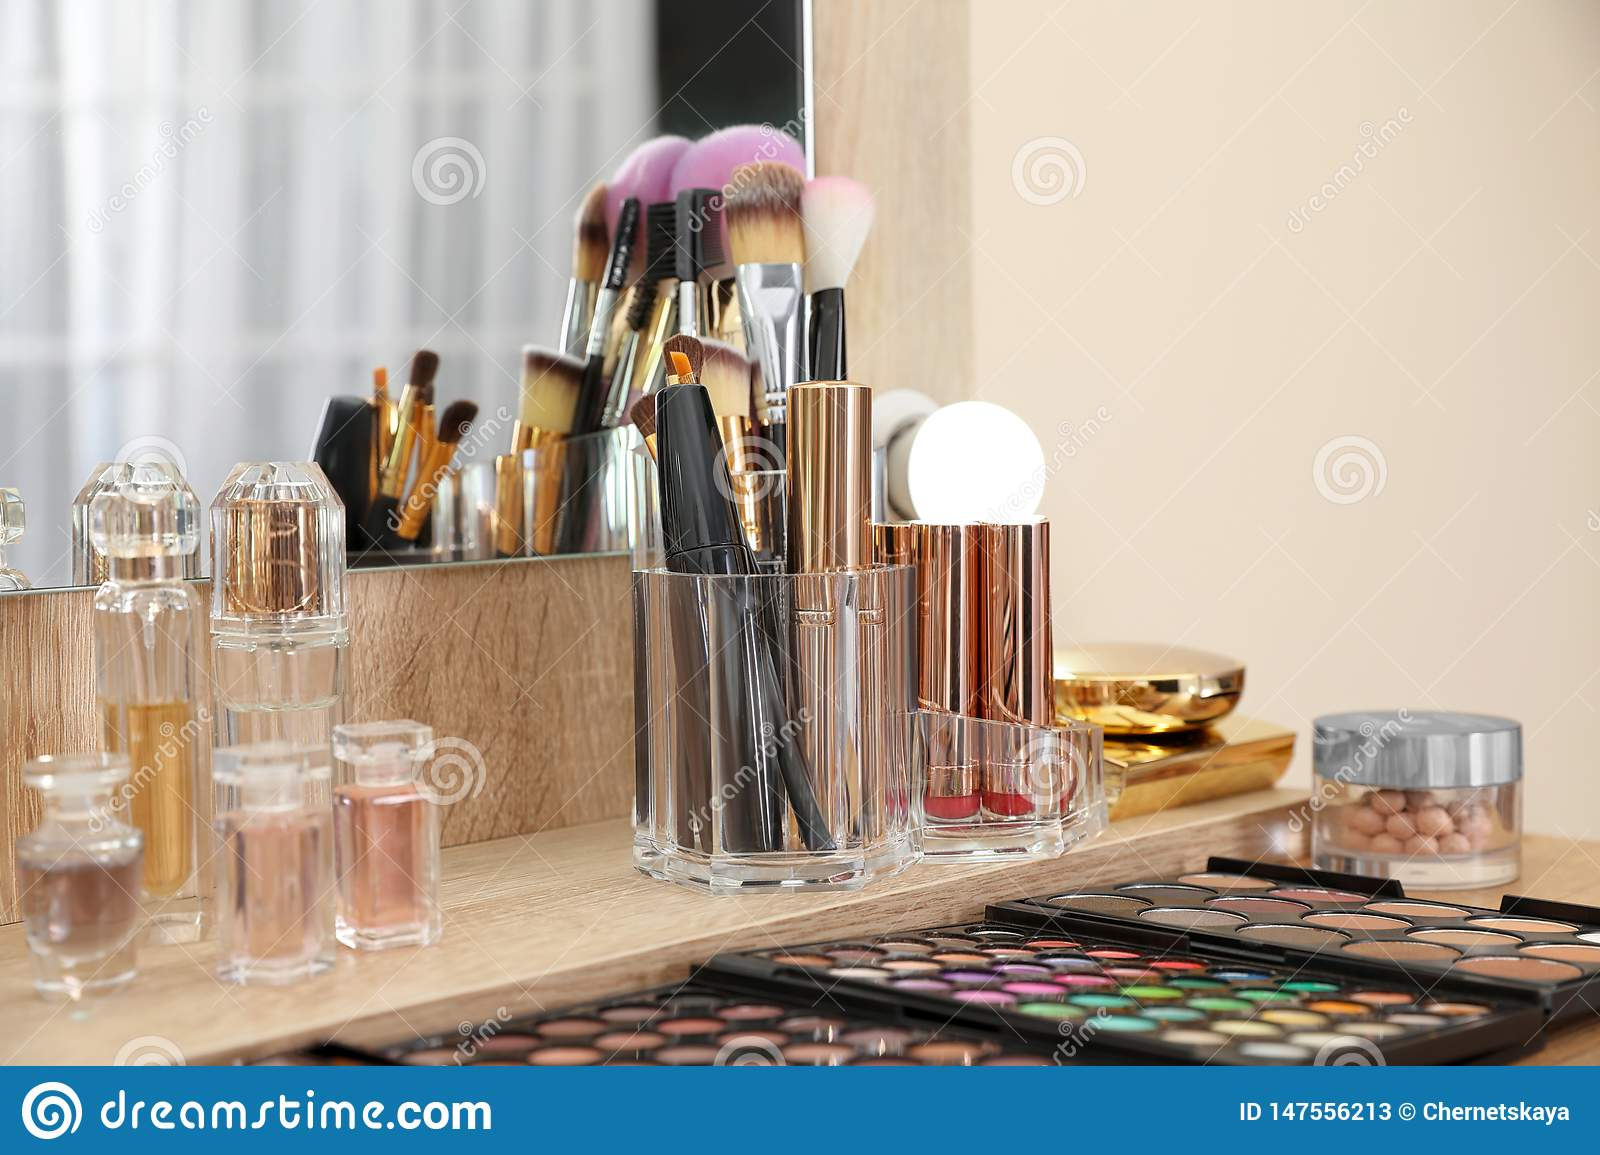 Set Of Luxury Makeup Products Accessories And Perfumes On Dressing Table In Room Stock Image Image Of Copy Detail 147556213